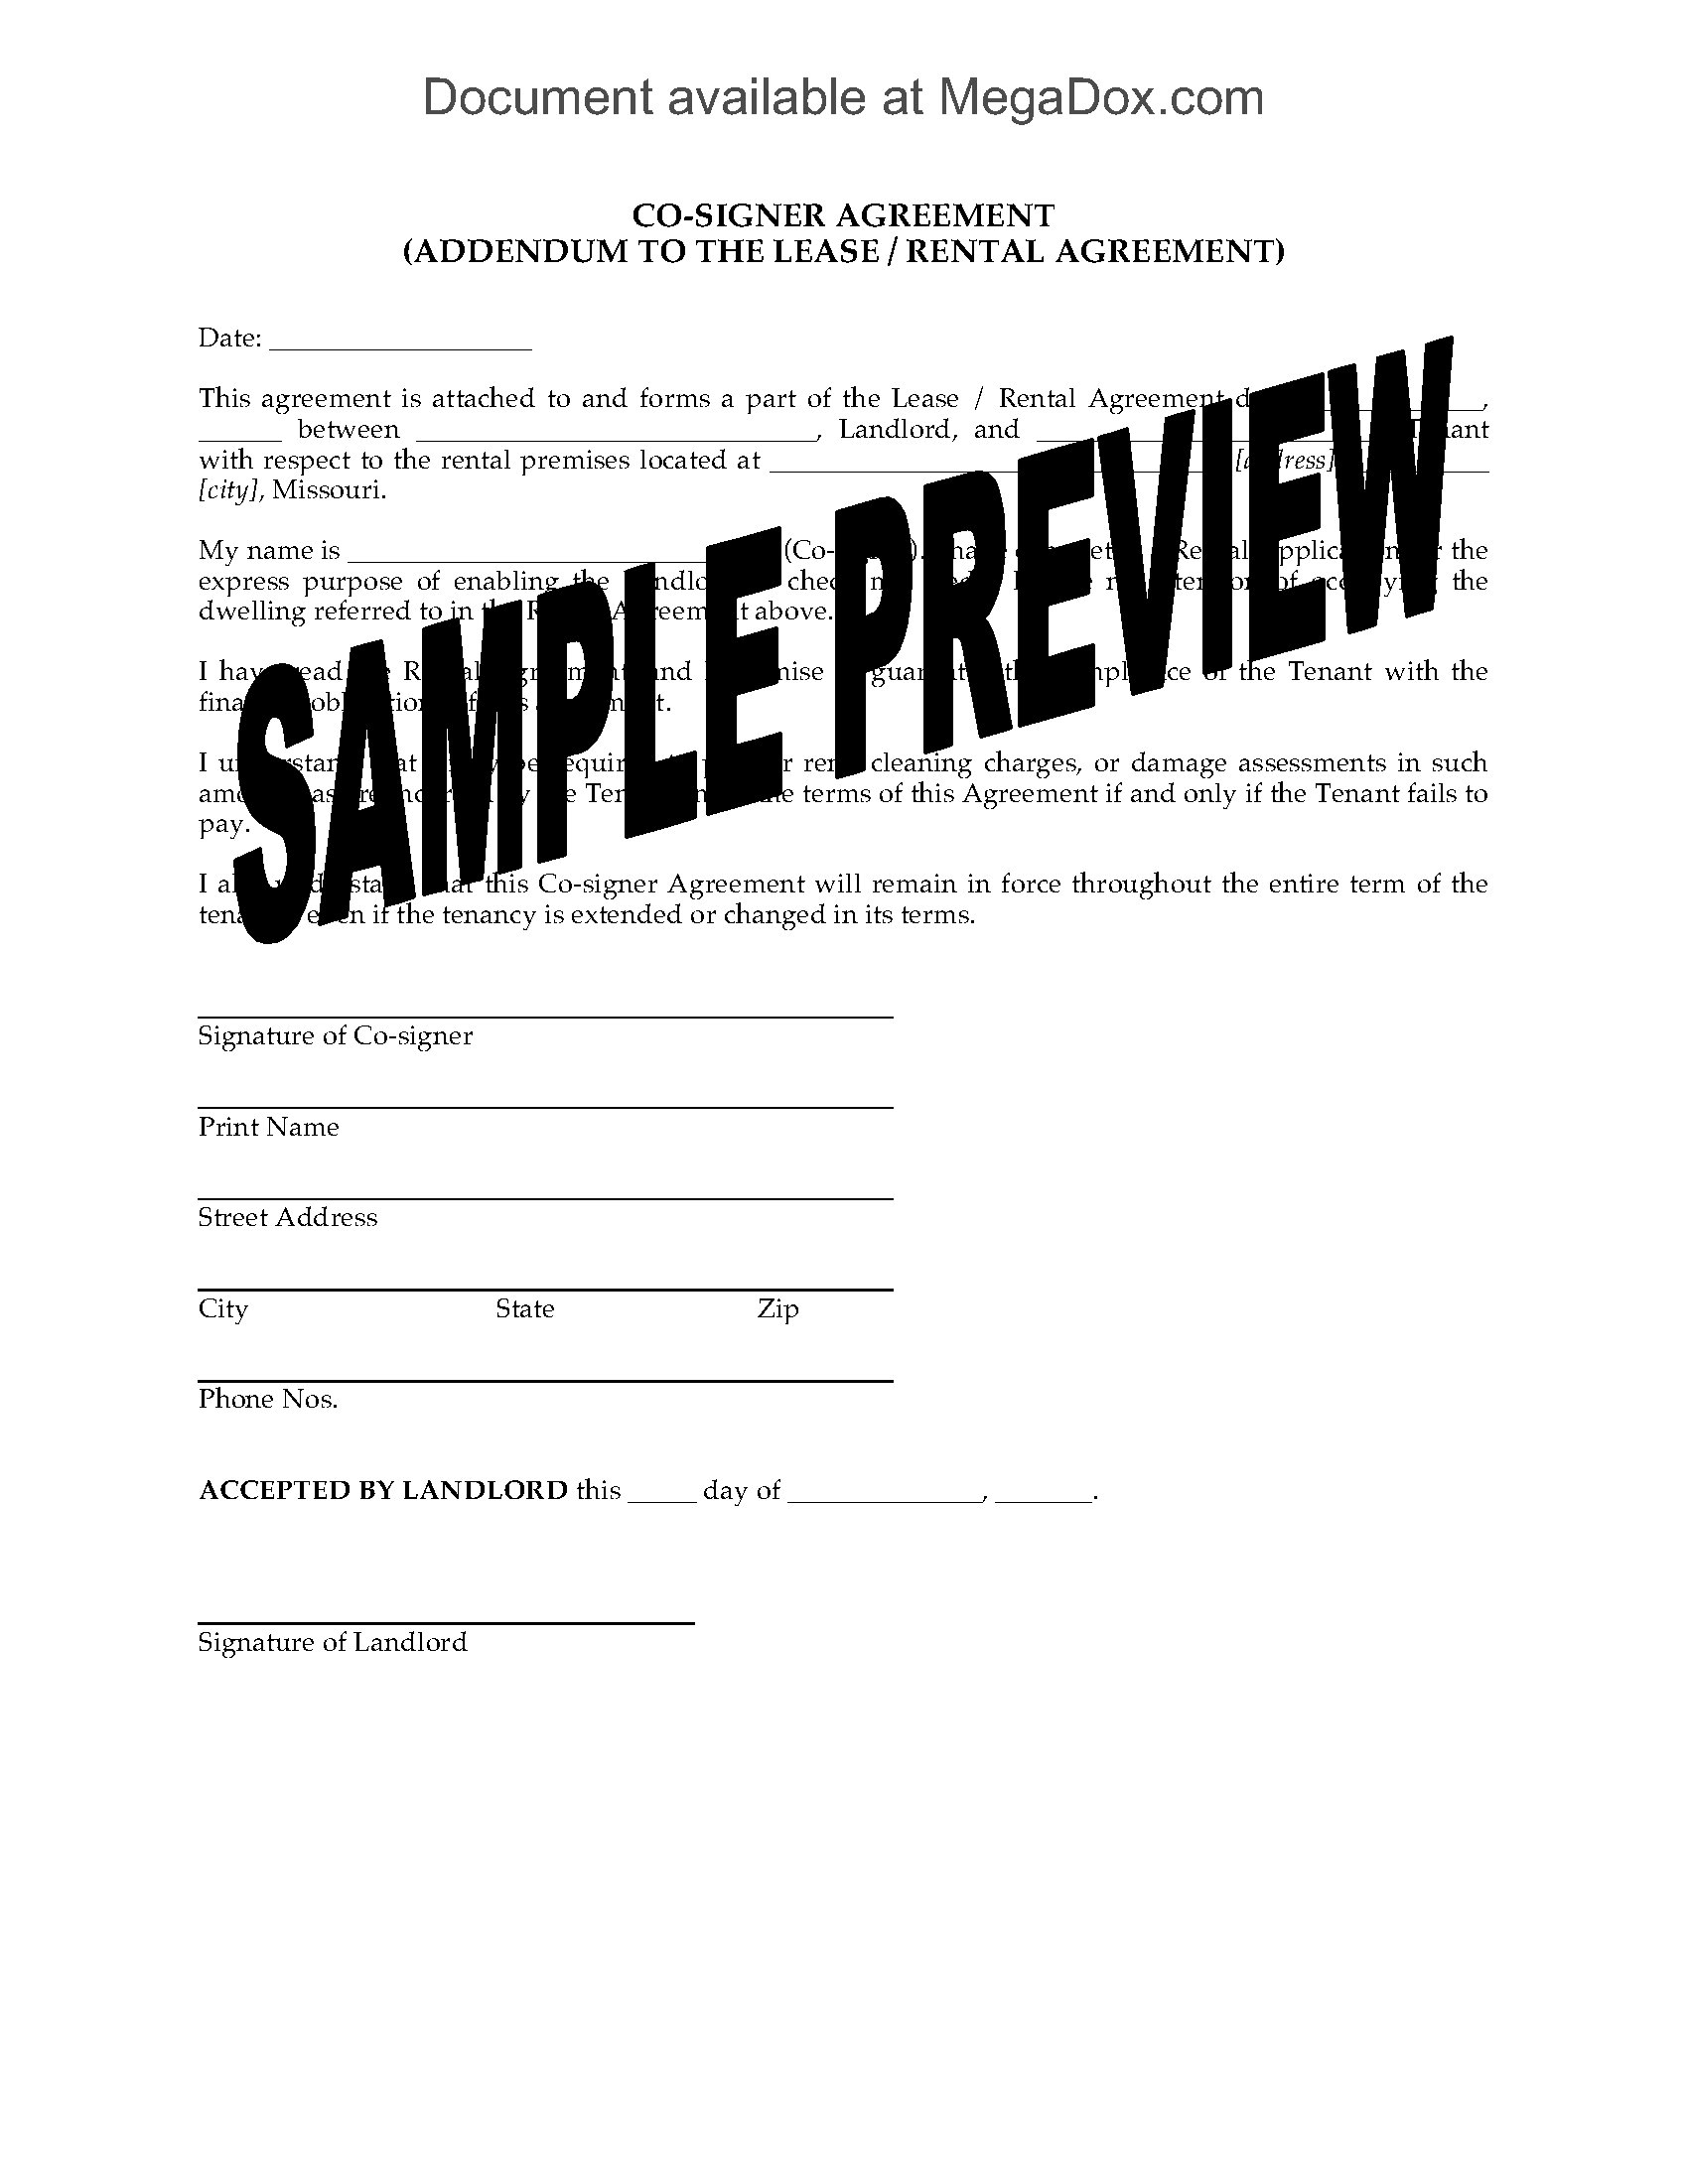 Missouri Lease Co Signer Agreement Form Legal Forms And Business